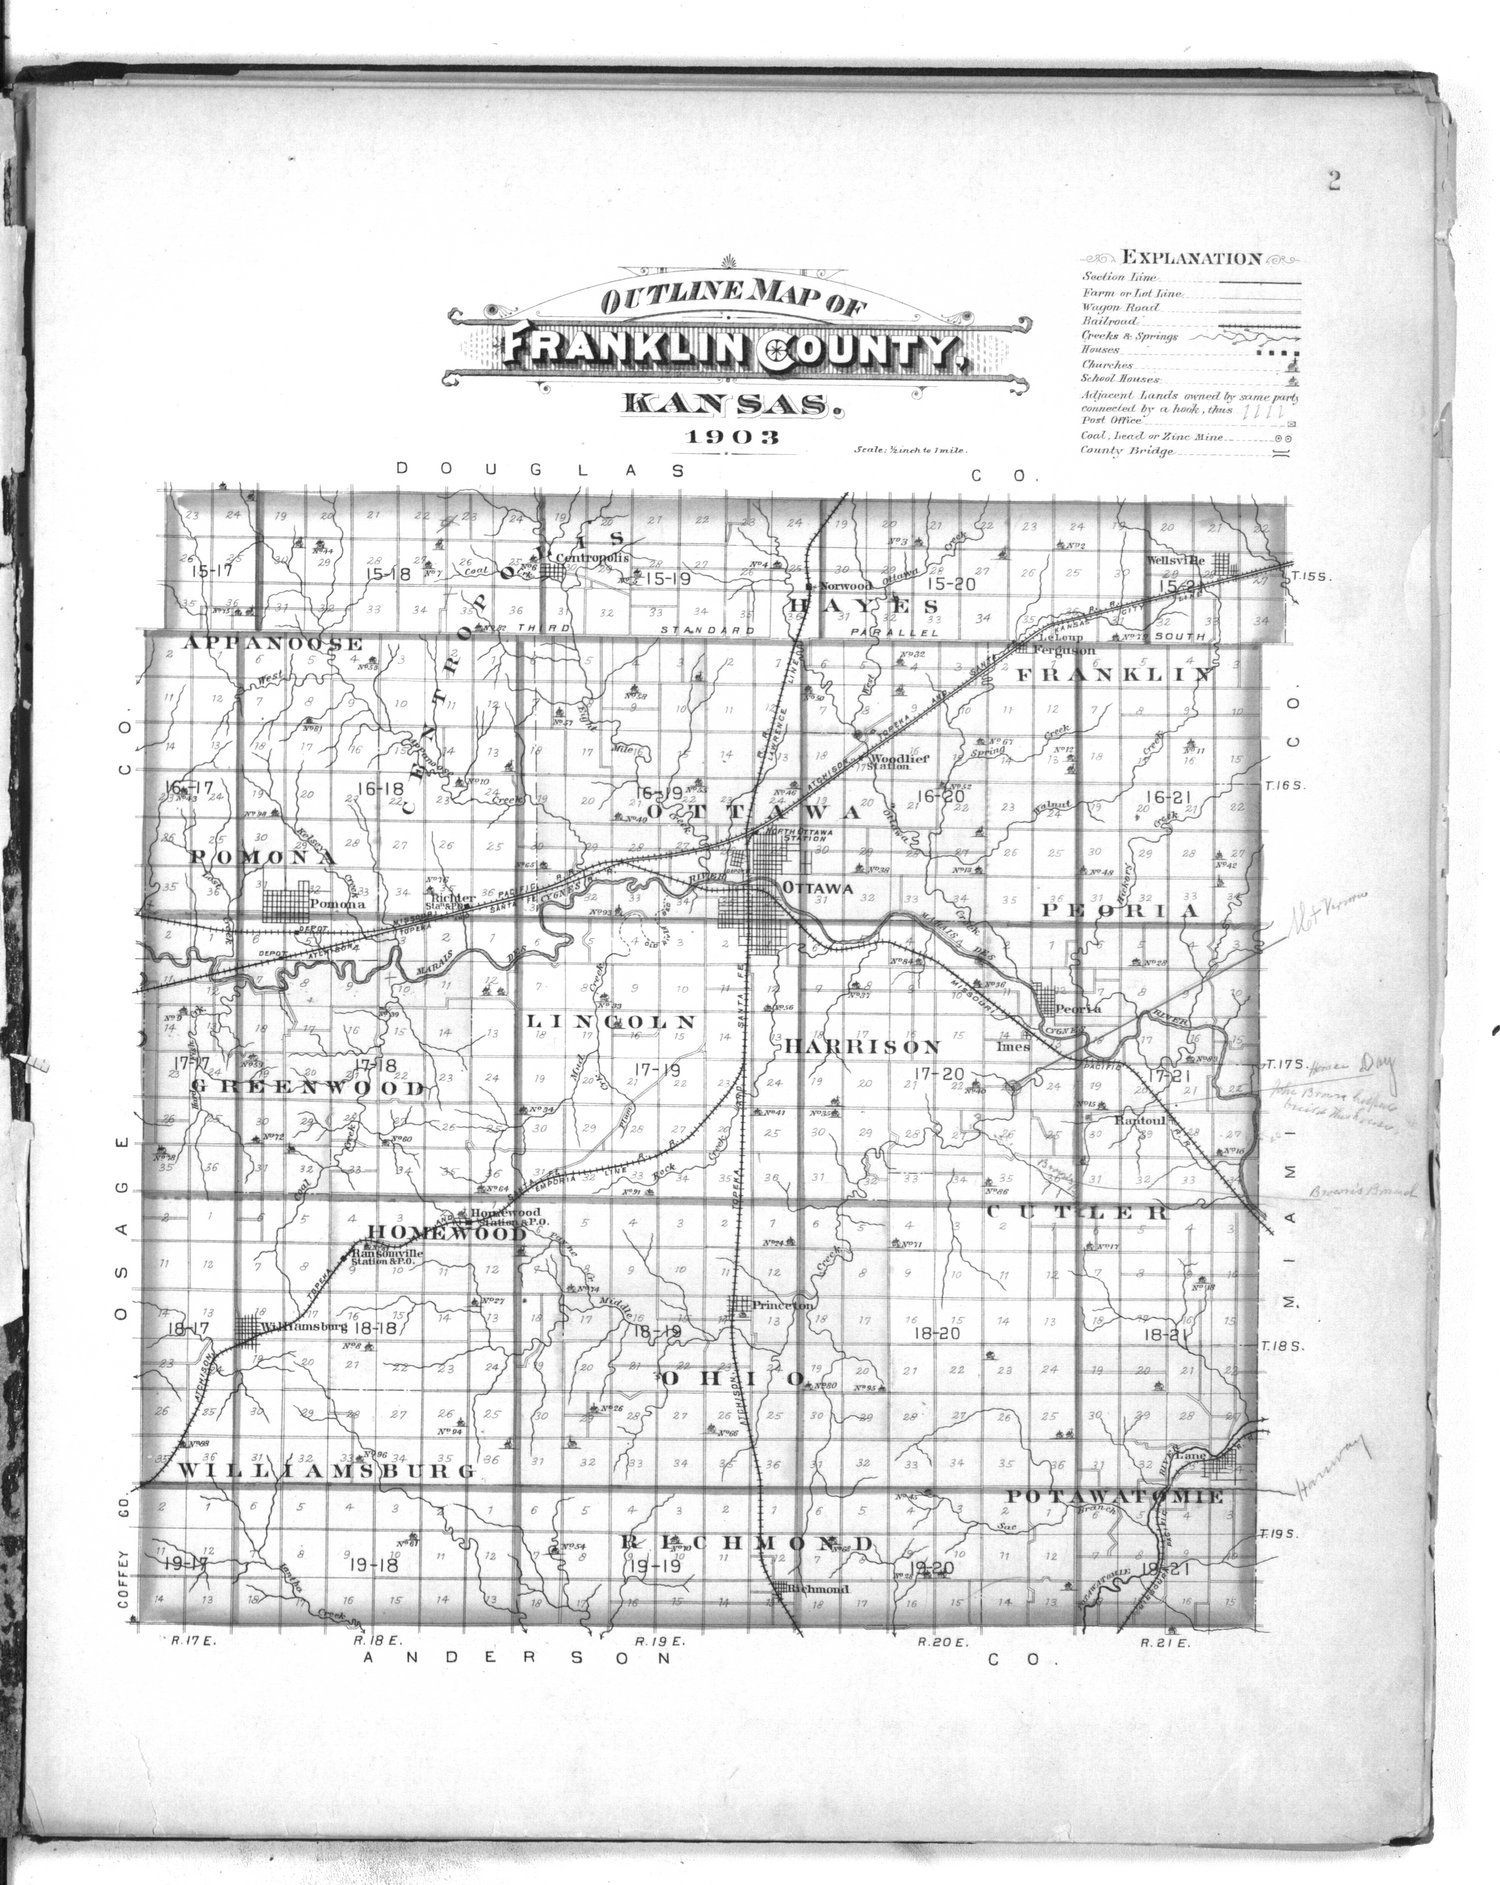 Plat book of Franklin County, Kansas - 2